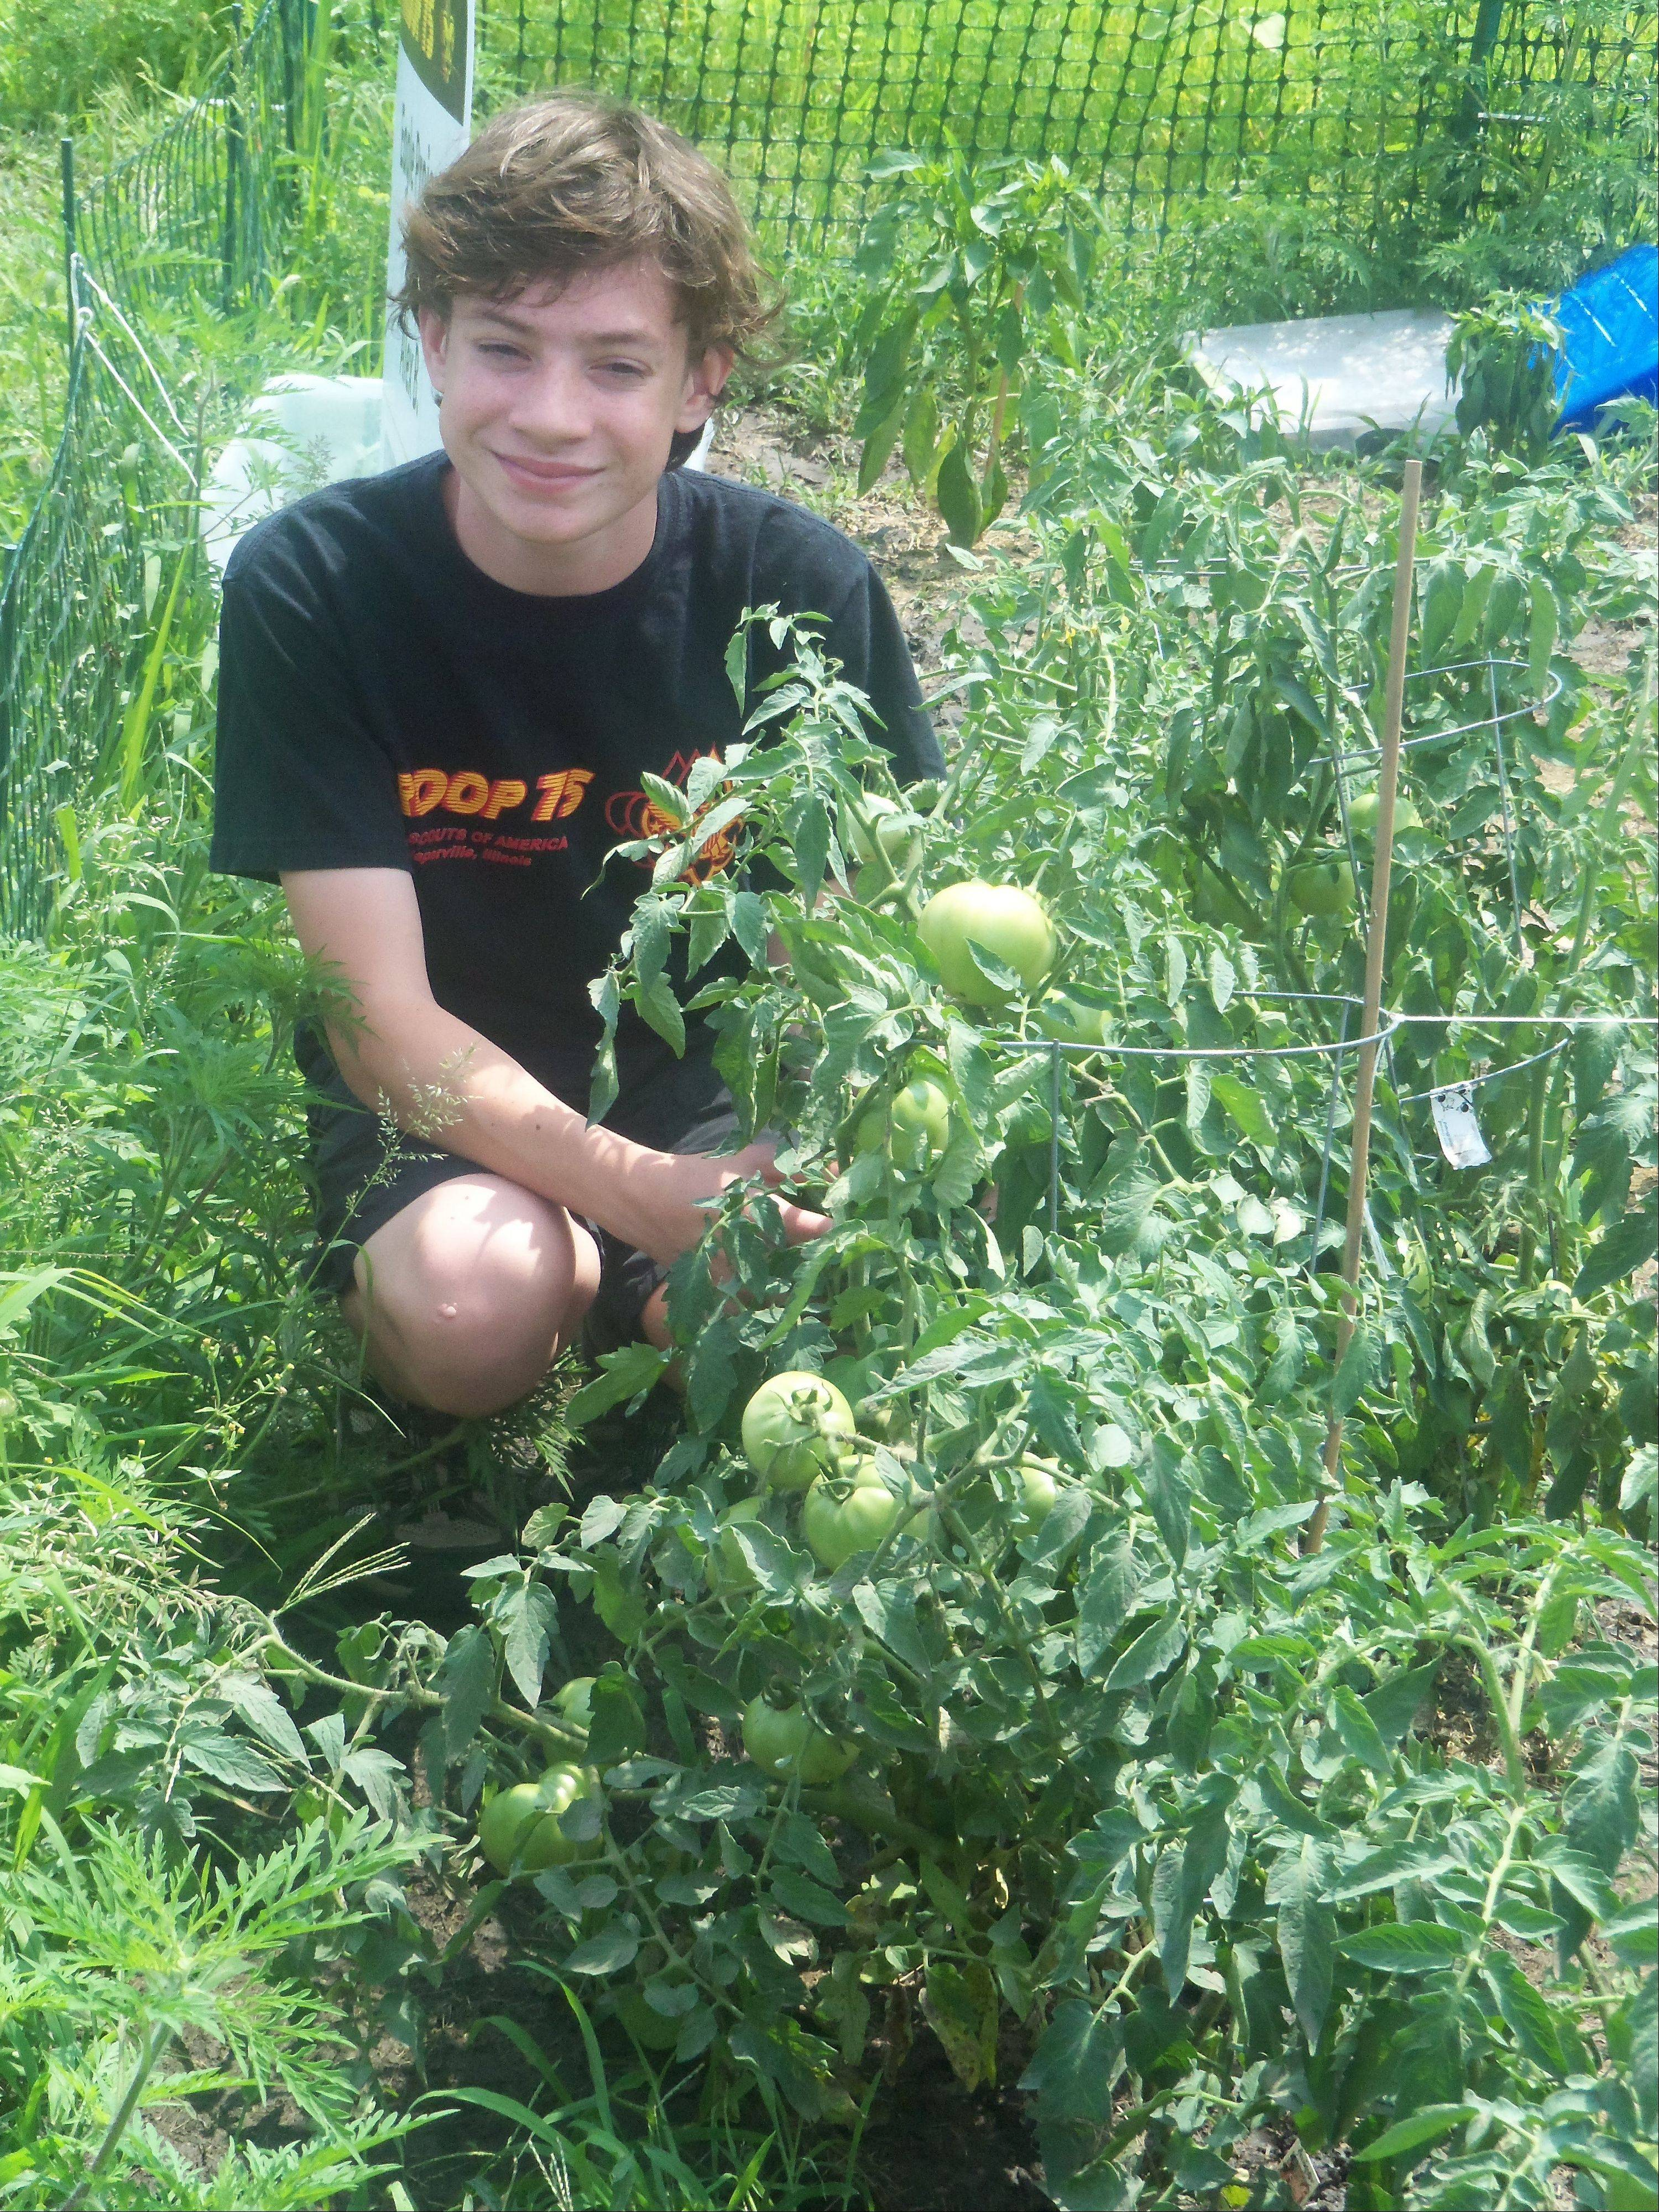 Eagle Scout project will turn out tomatoes, peppers